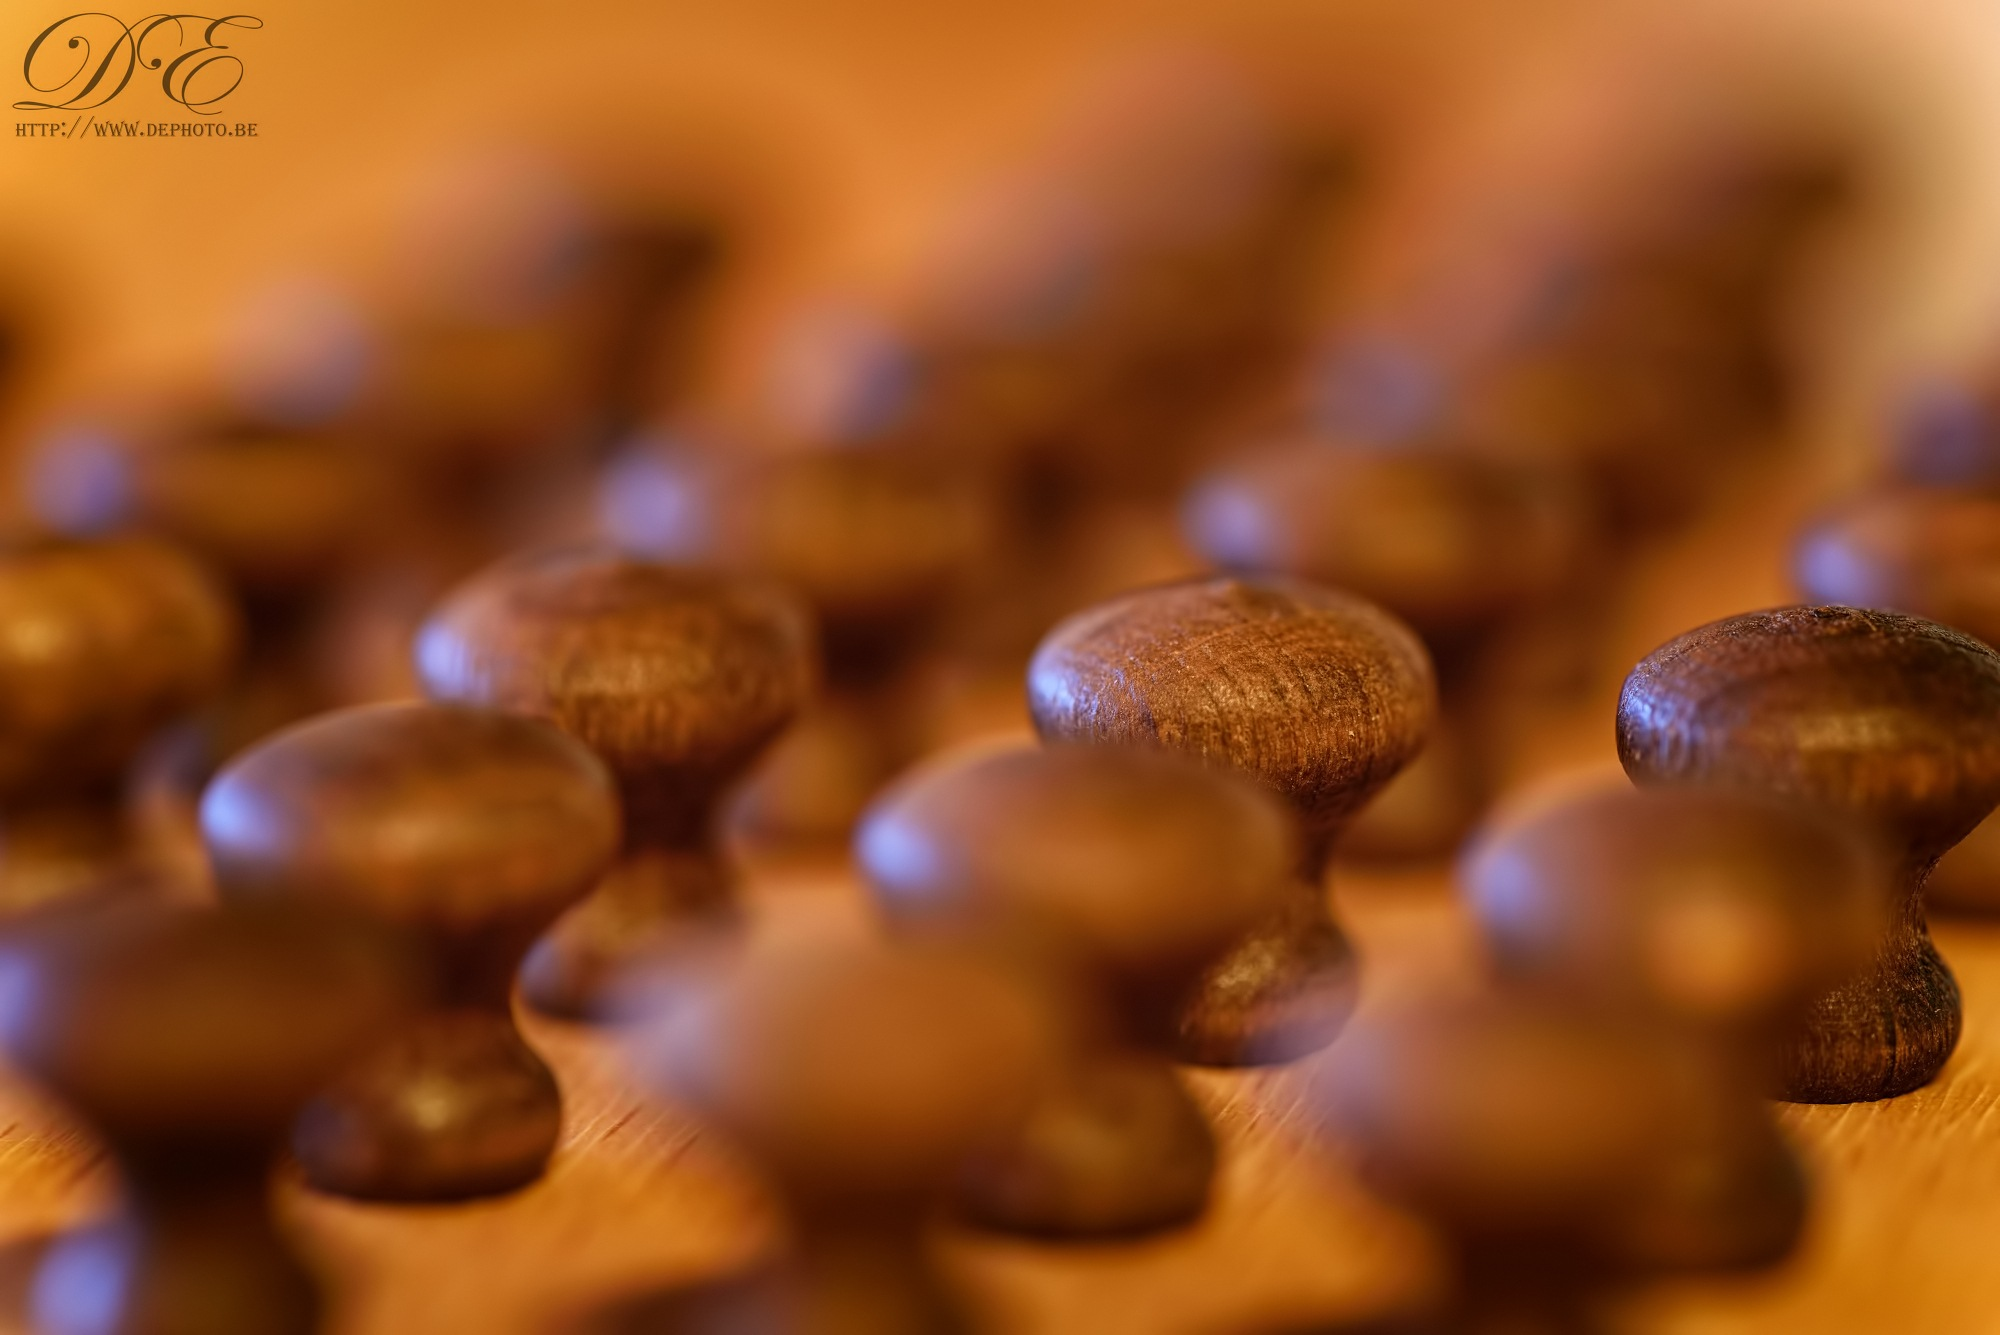 We are all pawns of a game by Dougal Egan